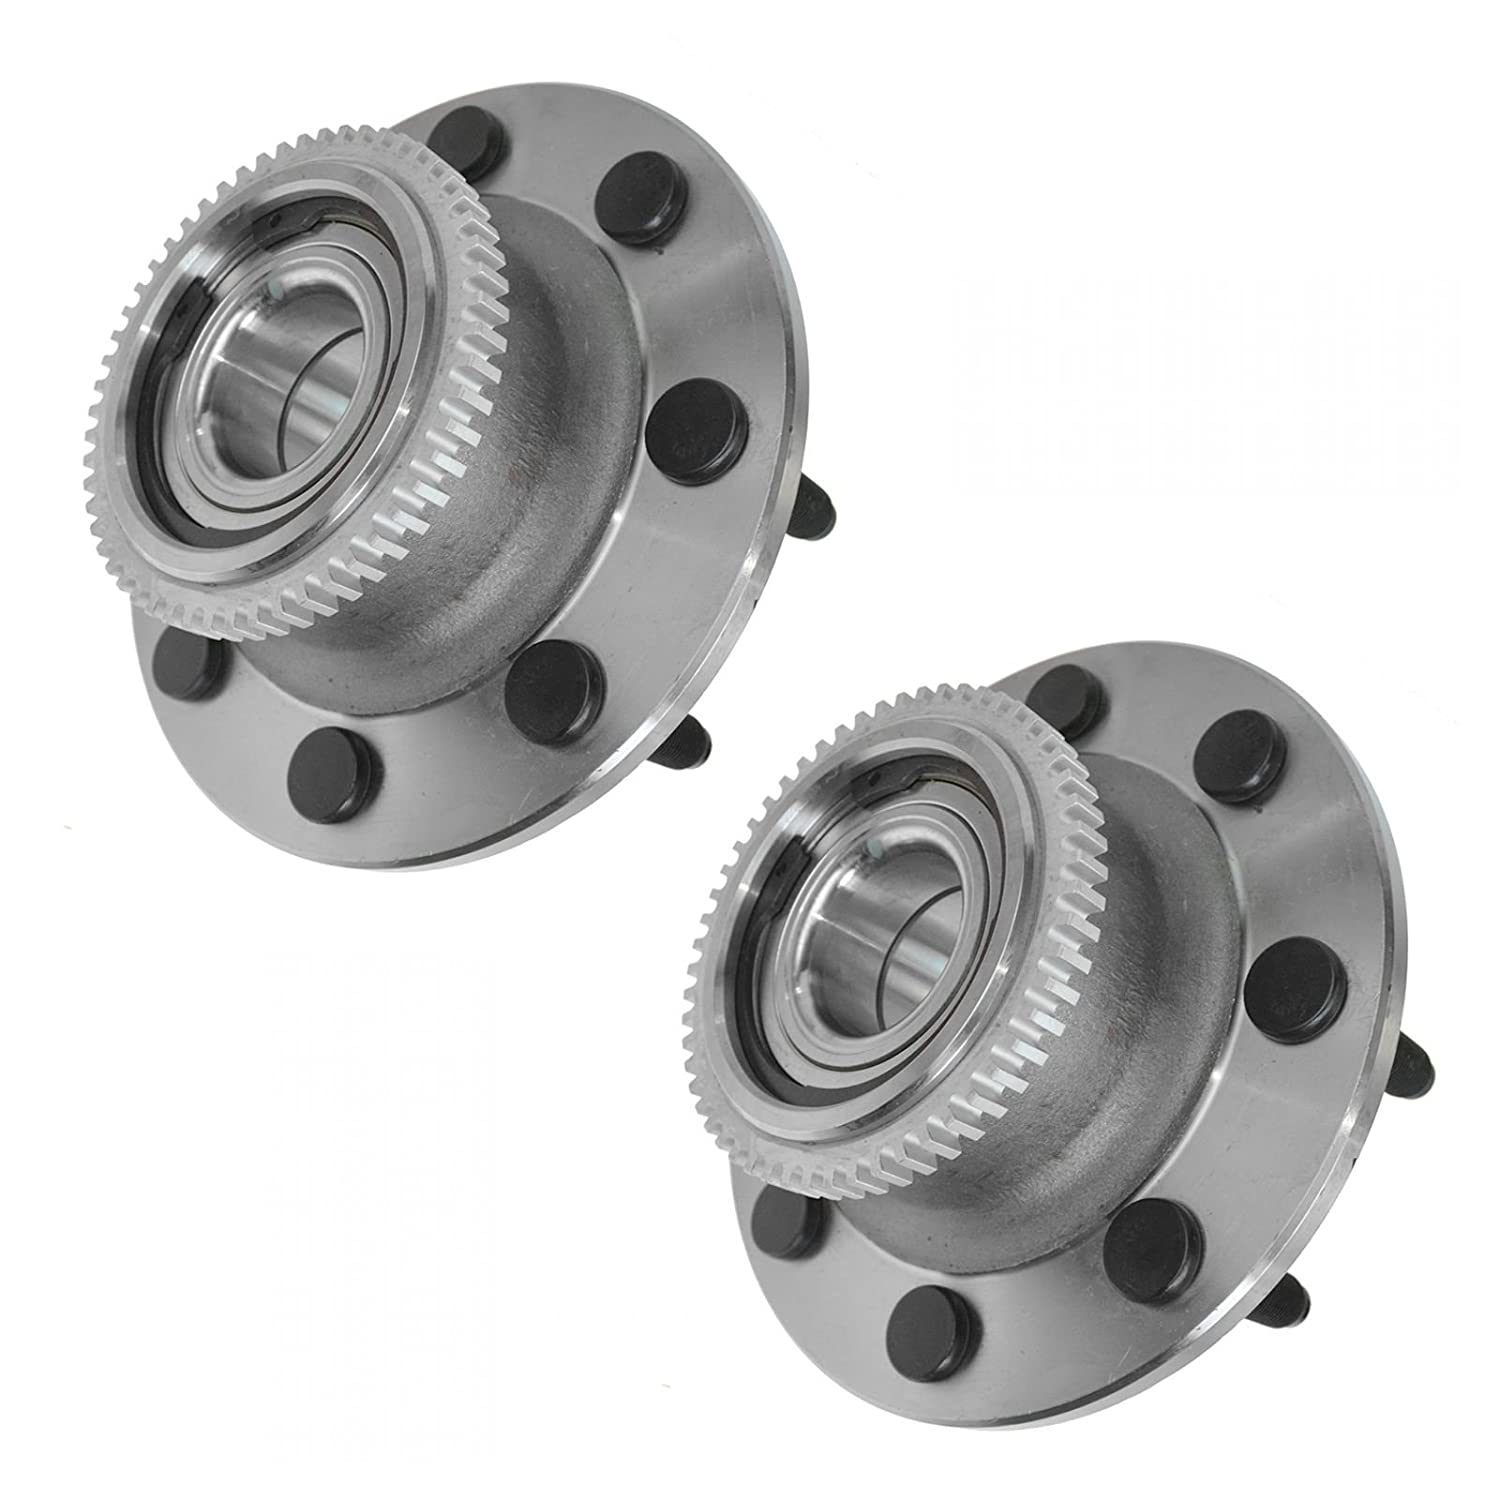 Front Wheel Hub /& Bearing LH /& RH Pair Set for 00-02 Dodge Ram 2500 3500 2WD